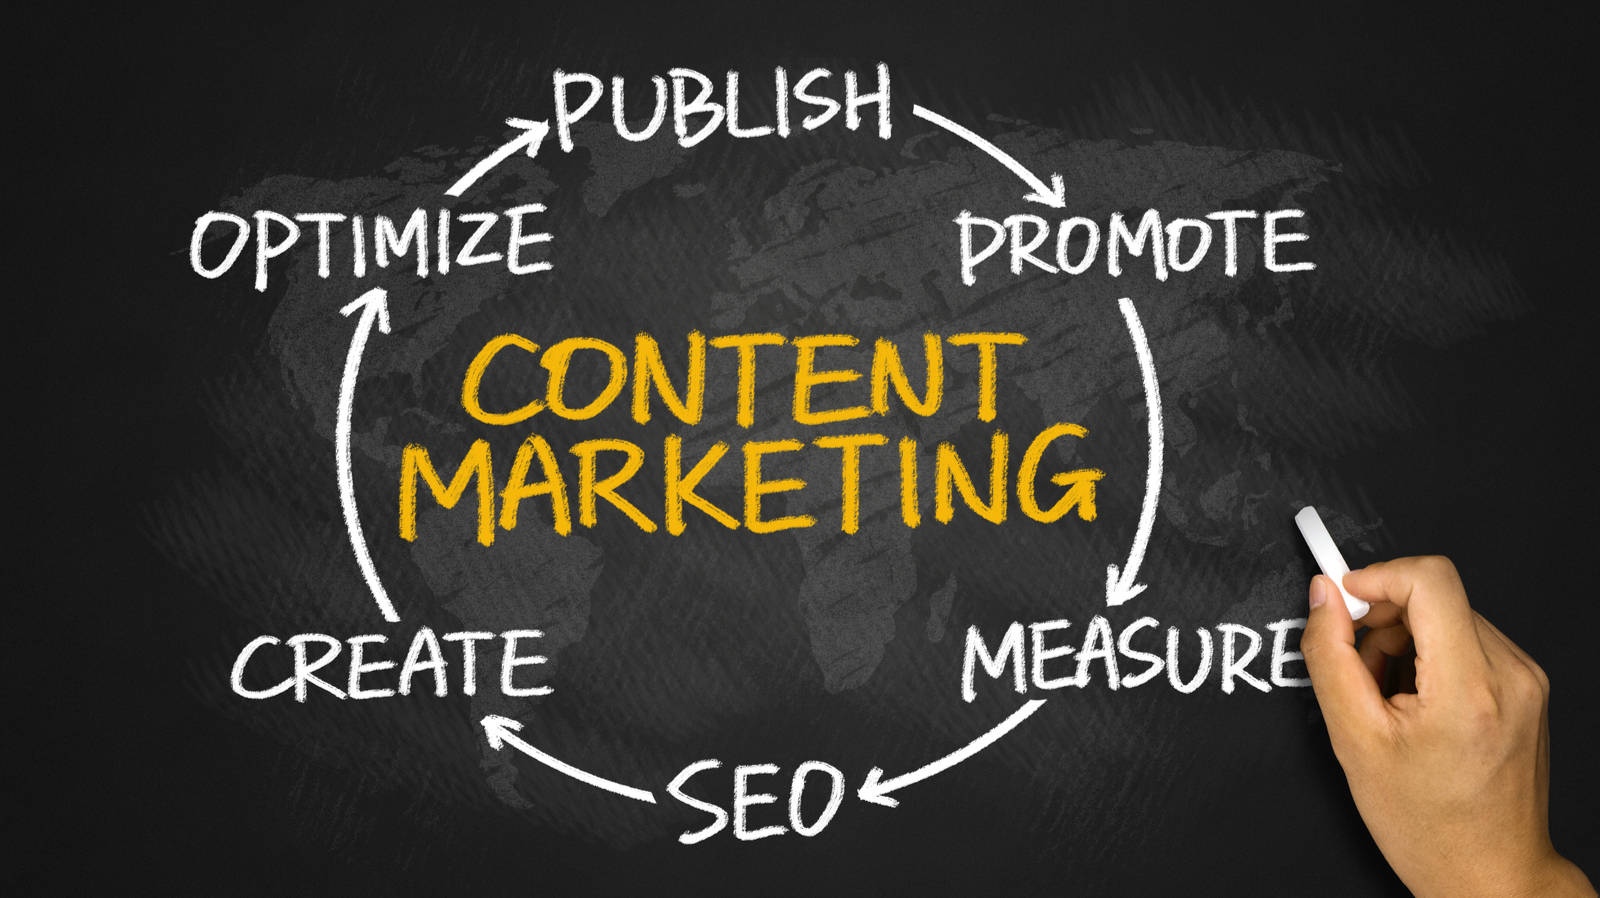 Content Marketing | Develop A Killer Content Marketing Plan In 7 Easy Steps